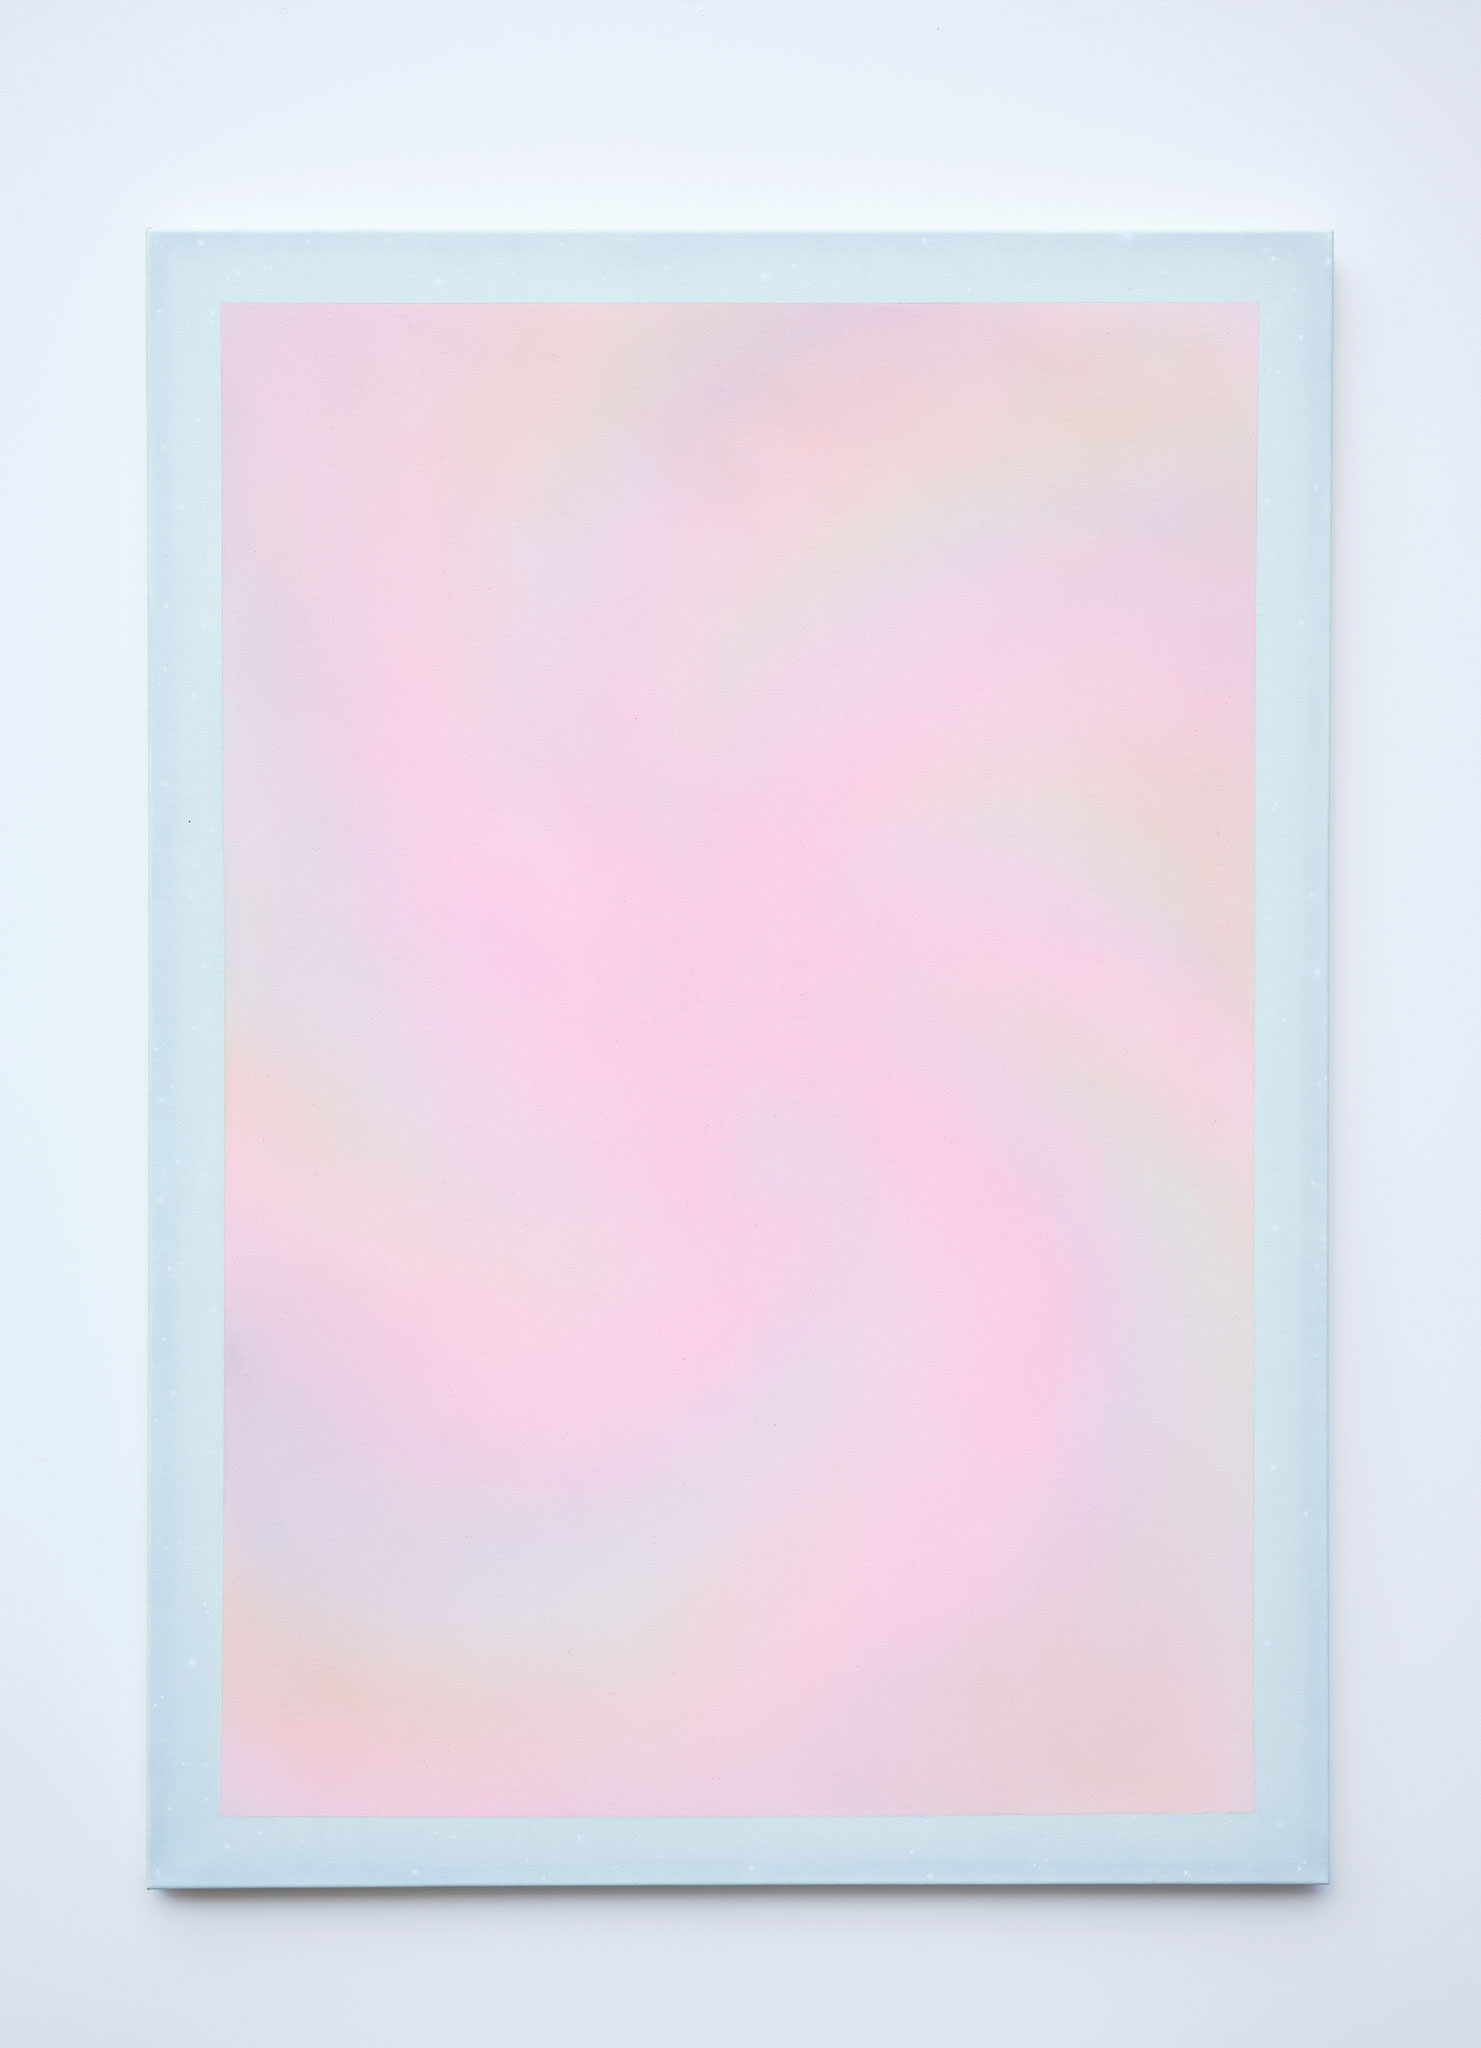 "Alina Birkner ""Untitled (Silver Crystal Power)"" 2018, 170x120 cm, Acrylic on Canvas"